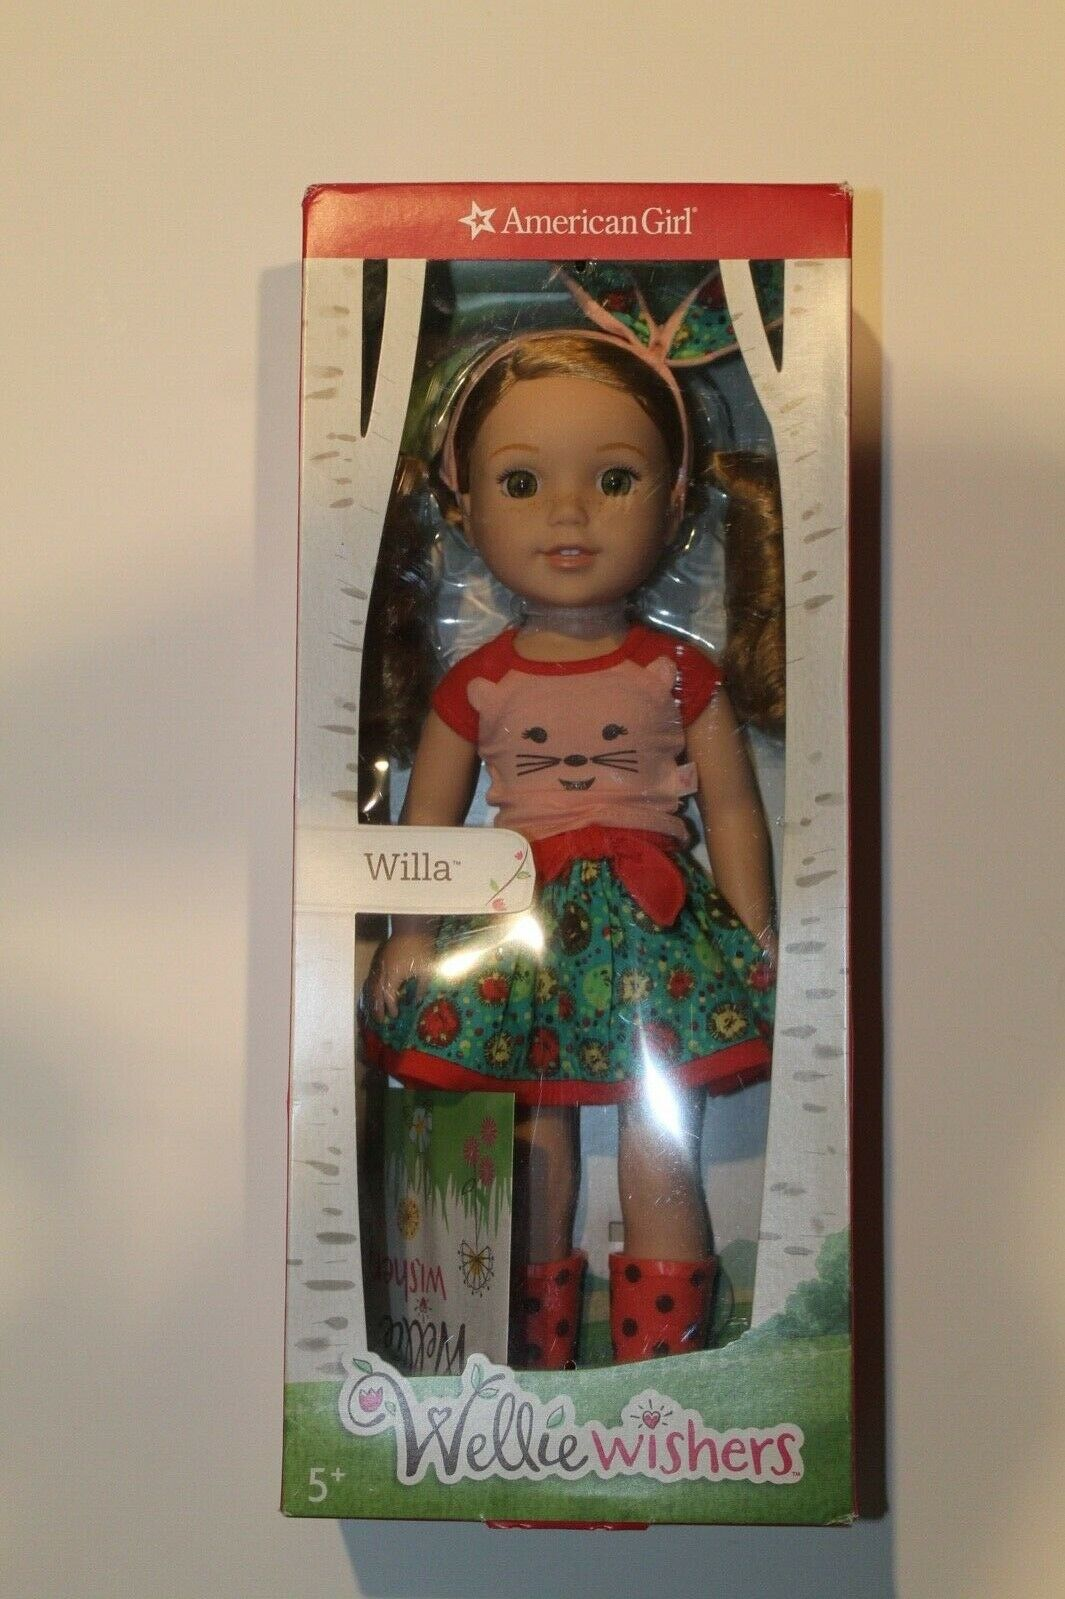 New American Girl Wellie Wishers Willa Doll NIB Authentic